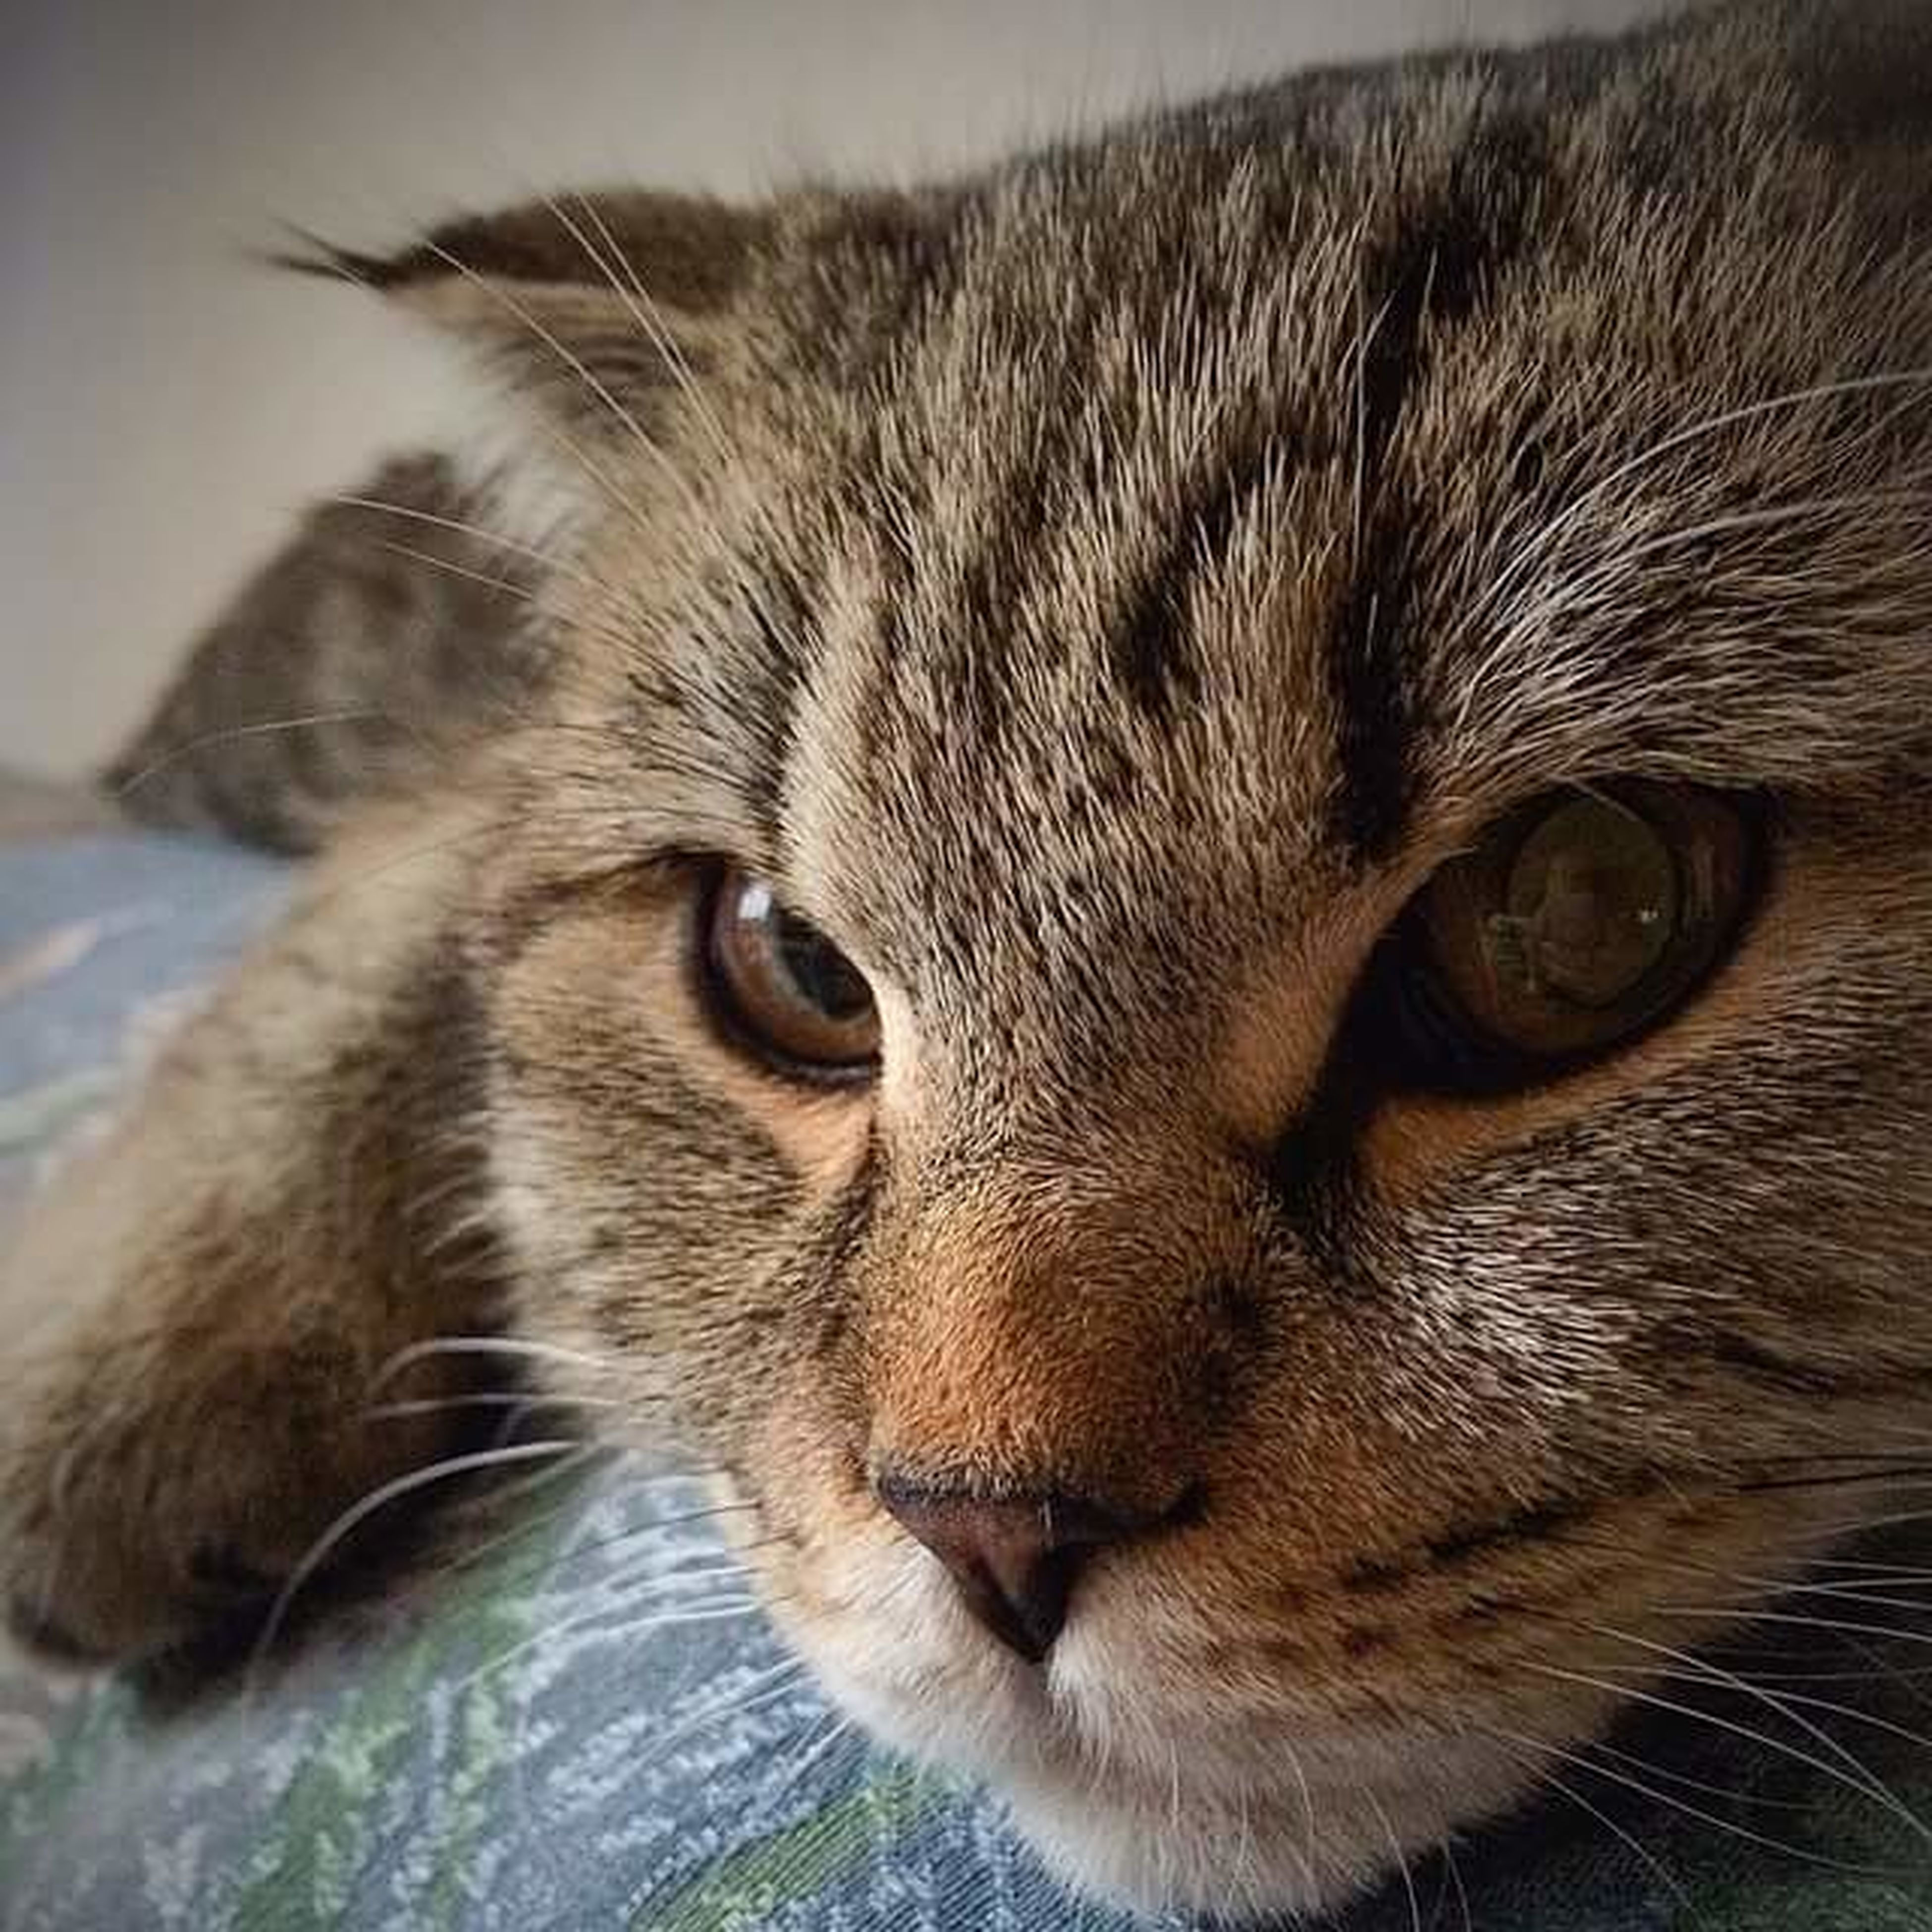 animal themes, one animal, mammal, domestic cat, domestic animals, pets, whisker, cat, feline, close-up, portrait, animal head, looking at camera, focus on foreground, animal body part, animal eye, alertness, staring, front view, no people